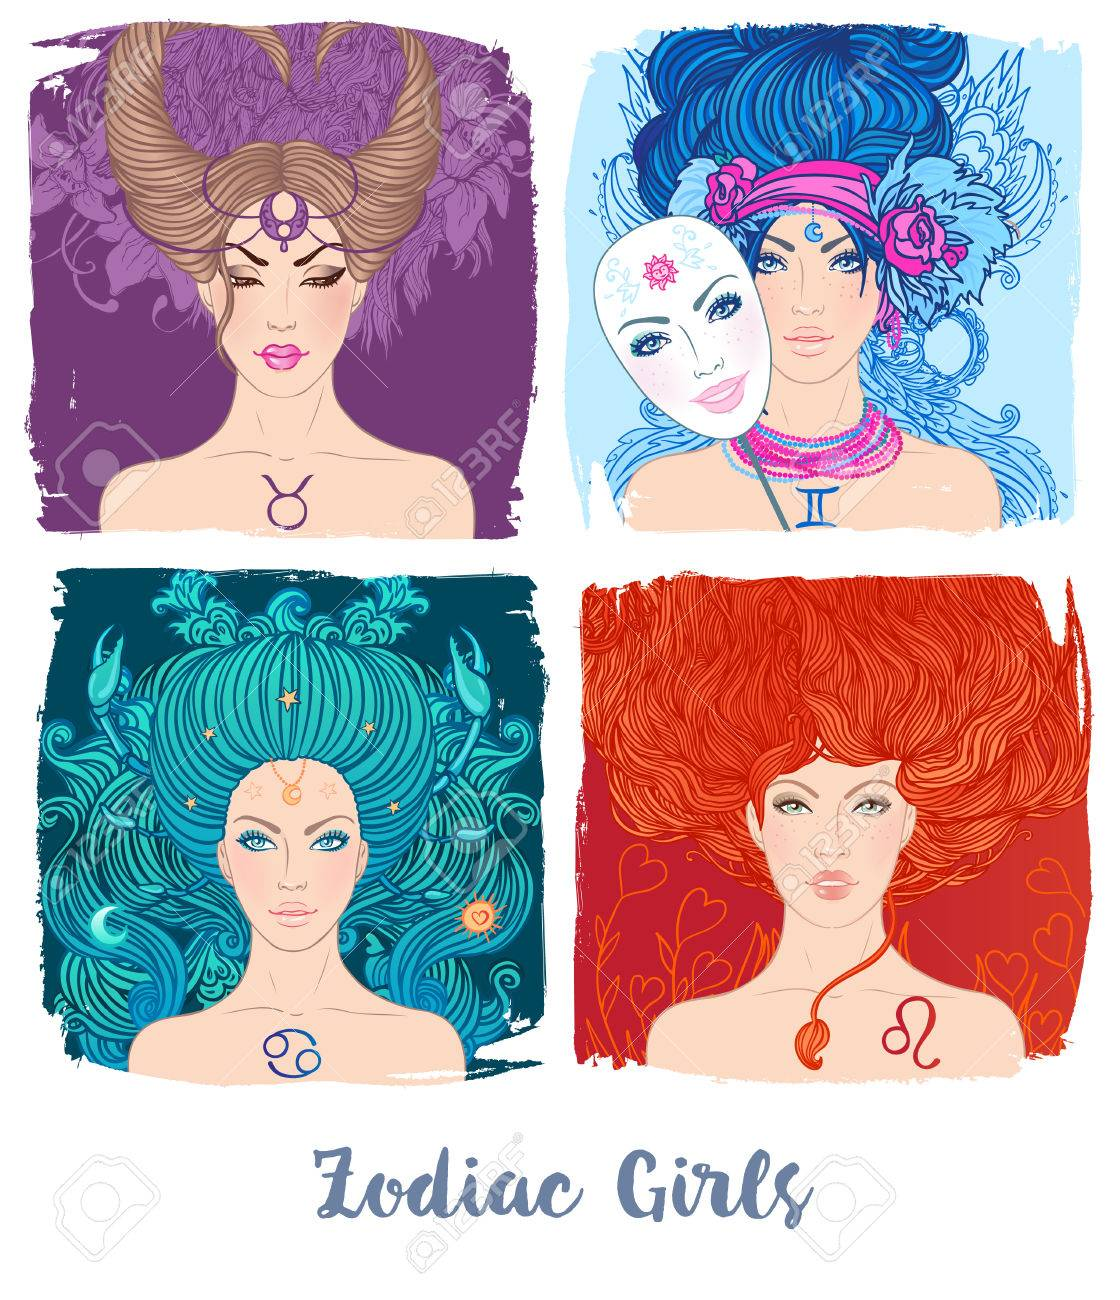 Zodiac Girls Set Vector Illustration Of Astrological Signs As